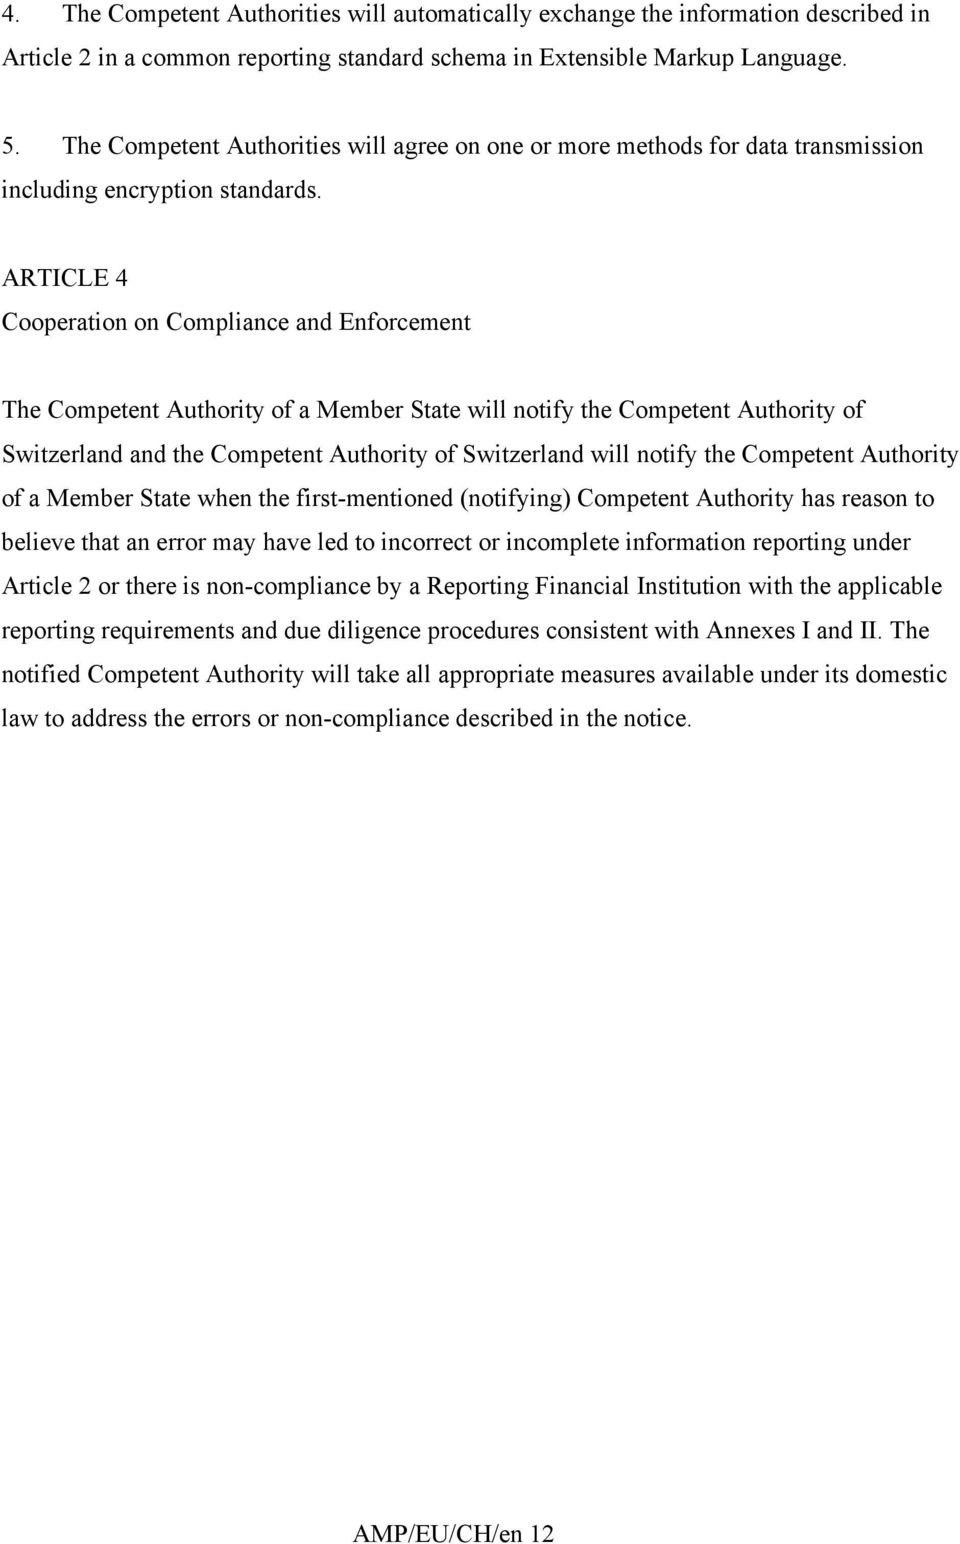 ARTICLE 4 Cooperation on Compliance and Enforcement The Competent Authority of a Member State will notify the Competent Authority of Switzerland and the Competent Authority of Switzerland will notify